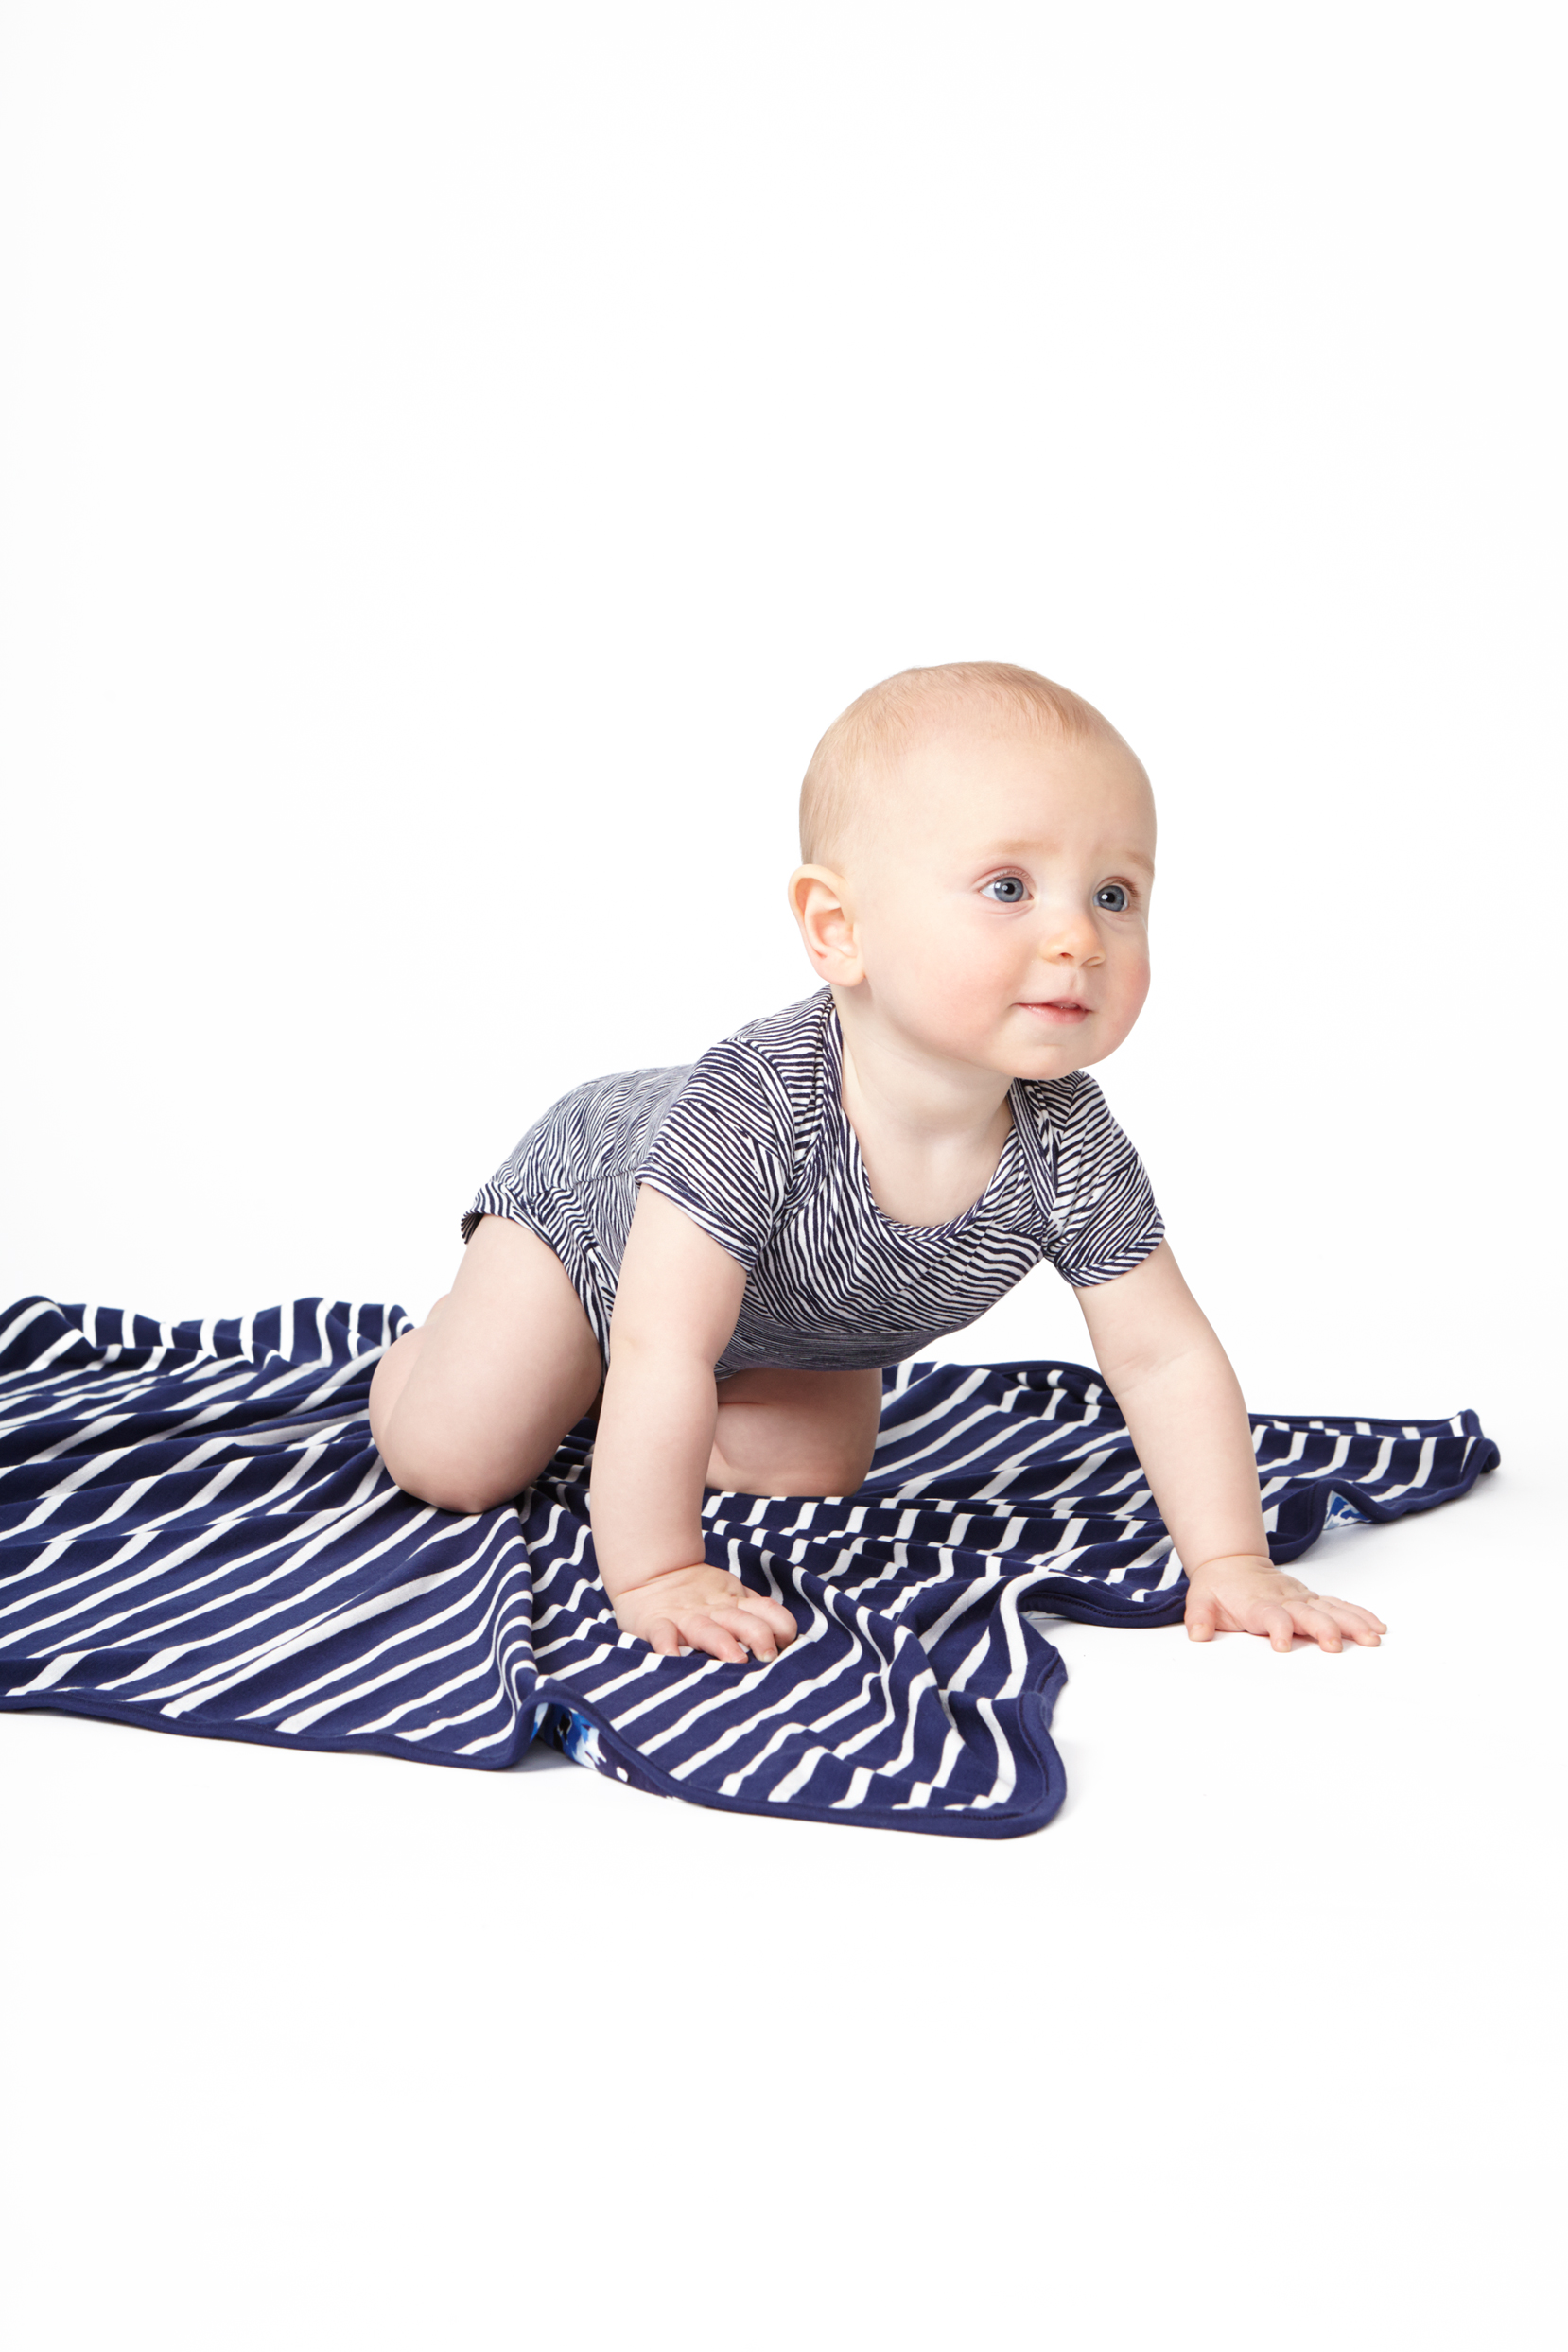 Rachel Pally Baby Clothes | TresChicNow.com #kids #baby #gifts #style #rachelpally